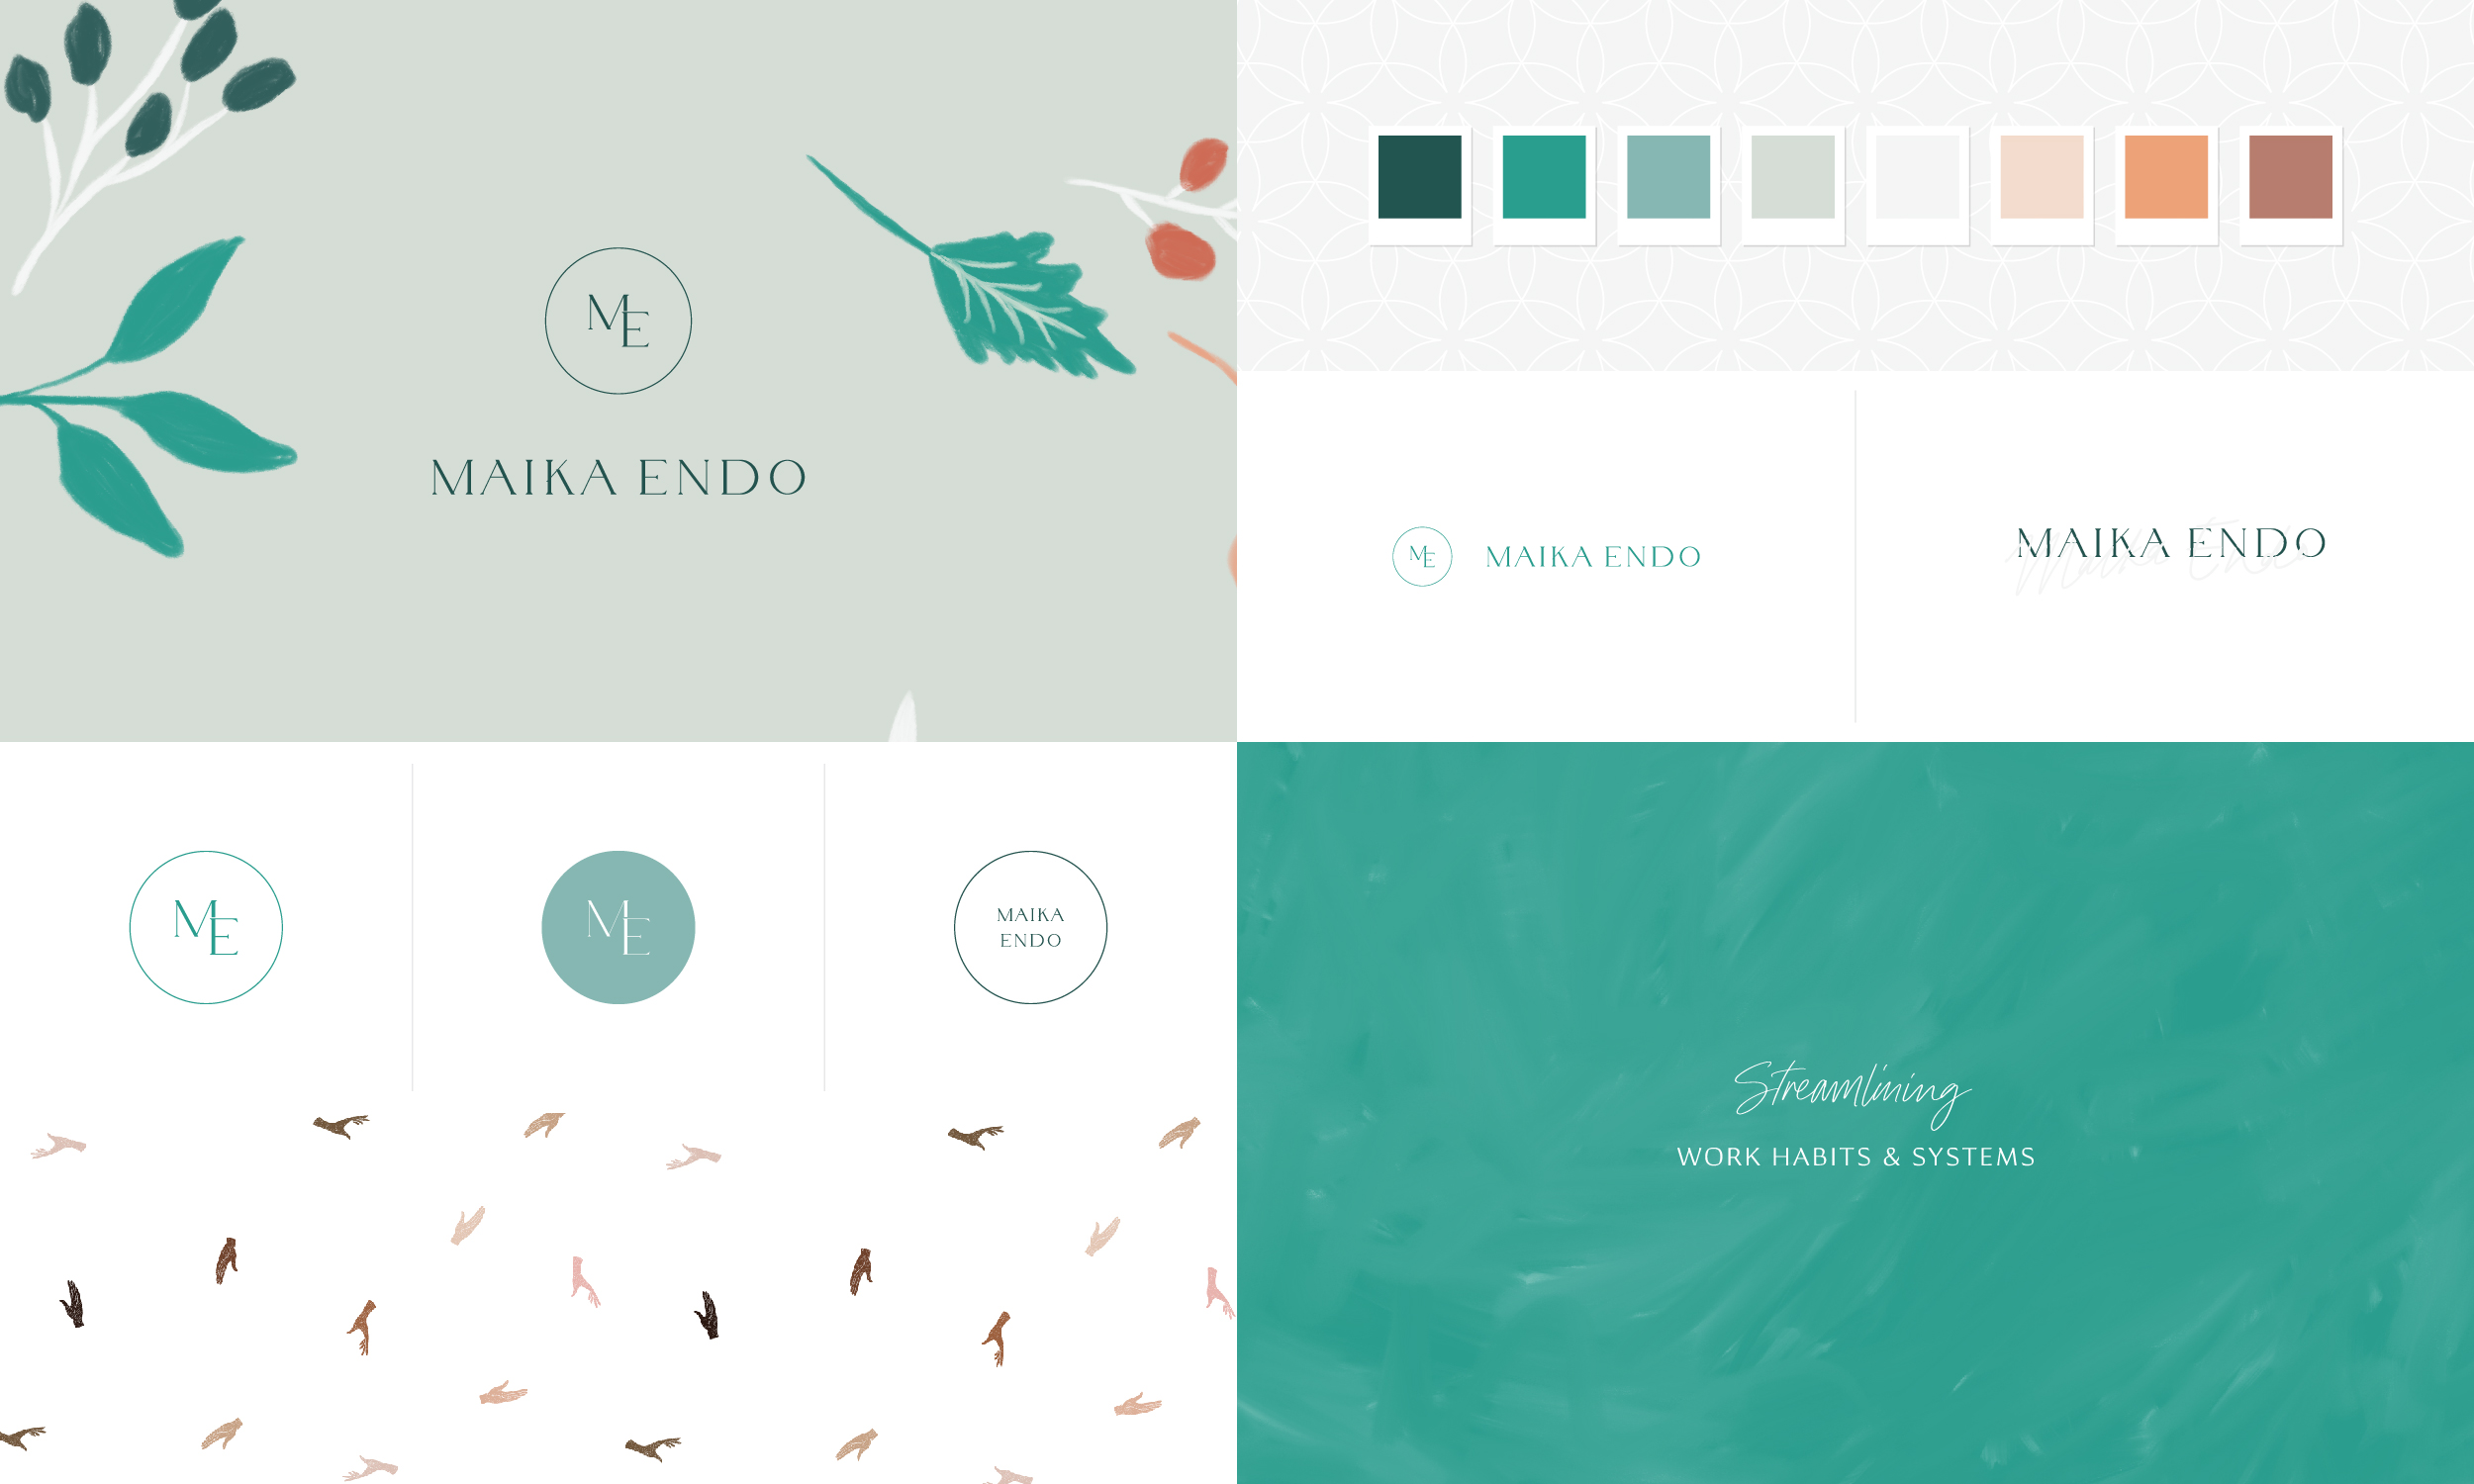 Maika Endo branding and strategy by Freckled Design Studio